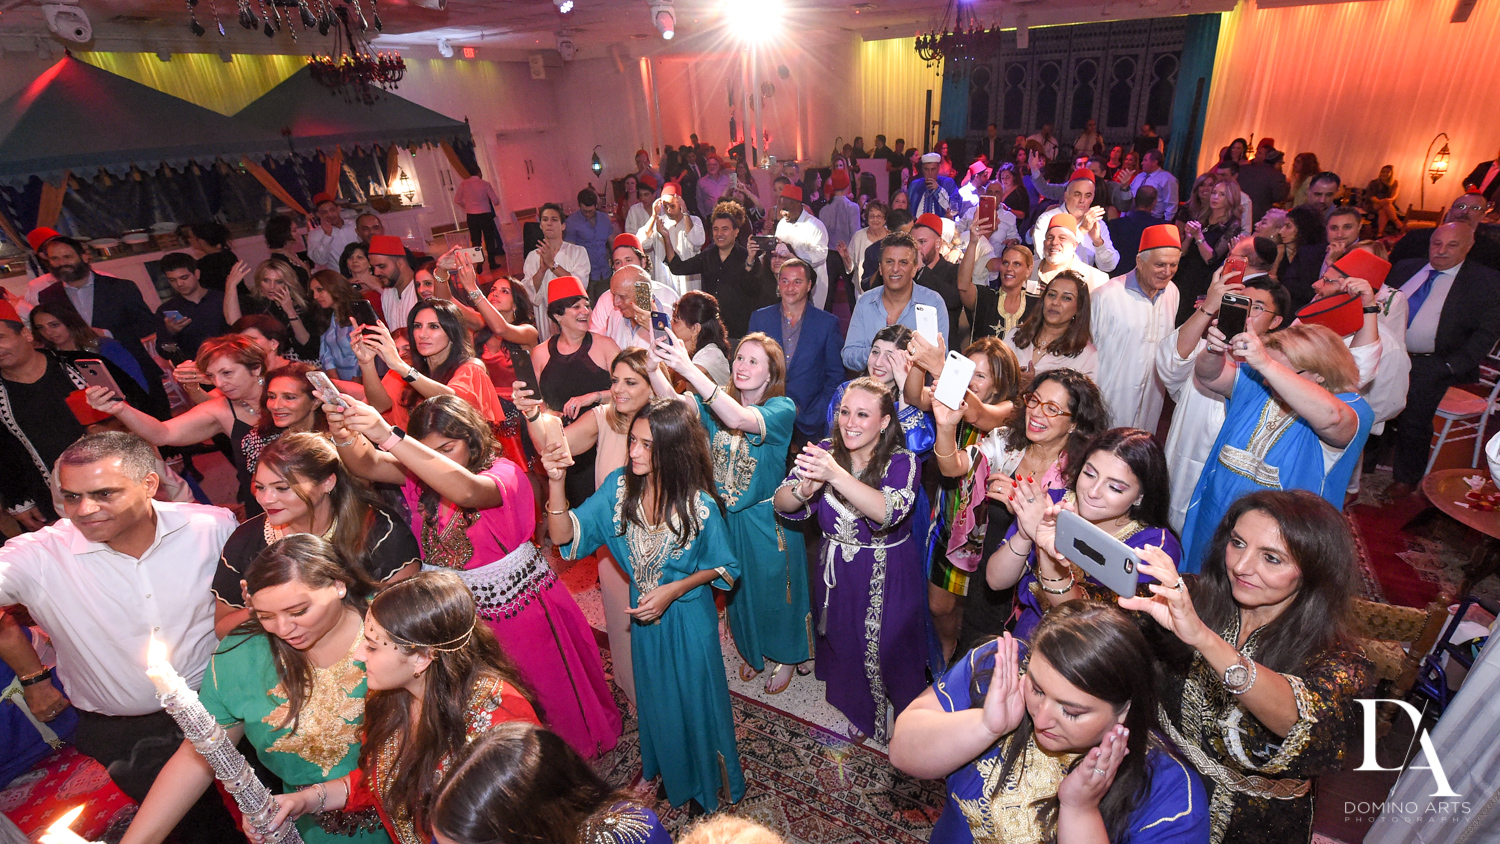 colorful party at Traditional Henna Party Photography at Lavan South Florida by Domino Arts